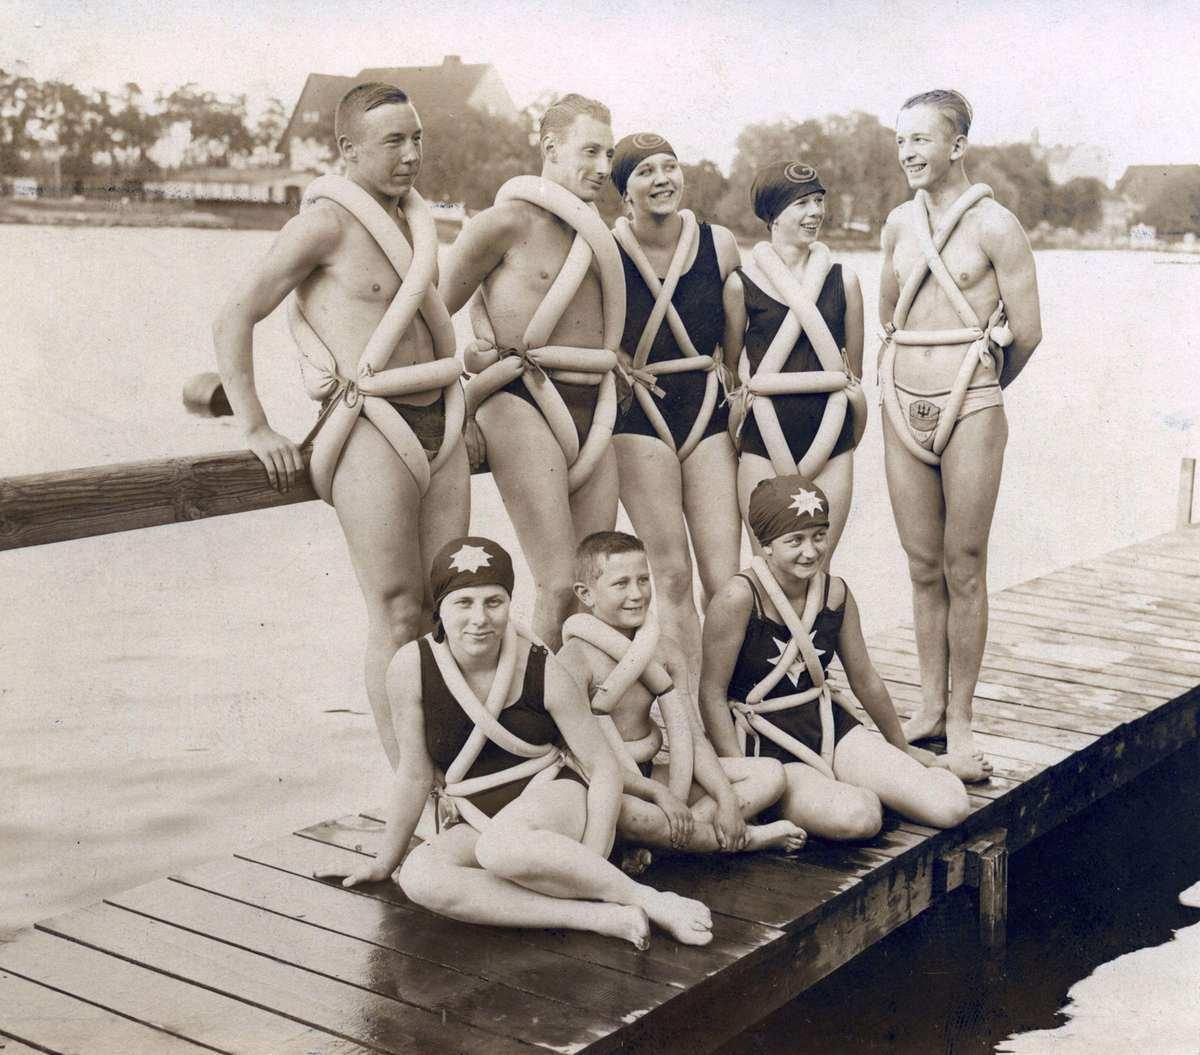 Retro photo, showing swimmers in 1920